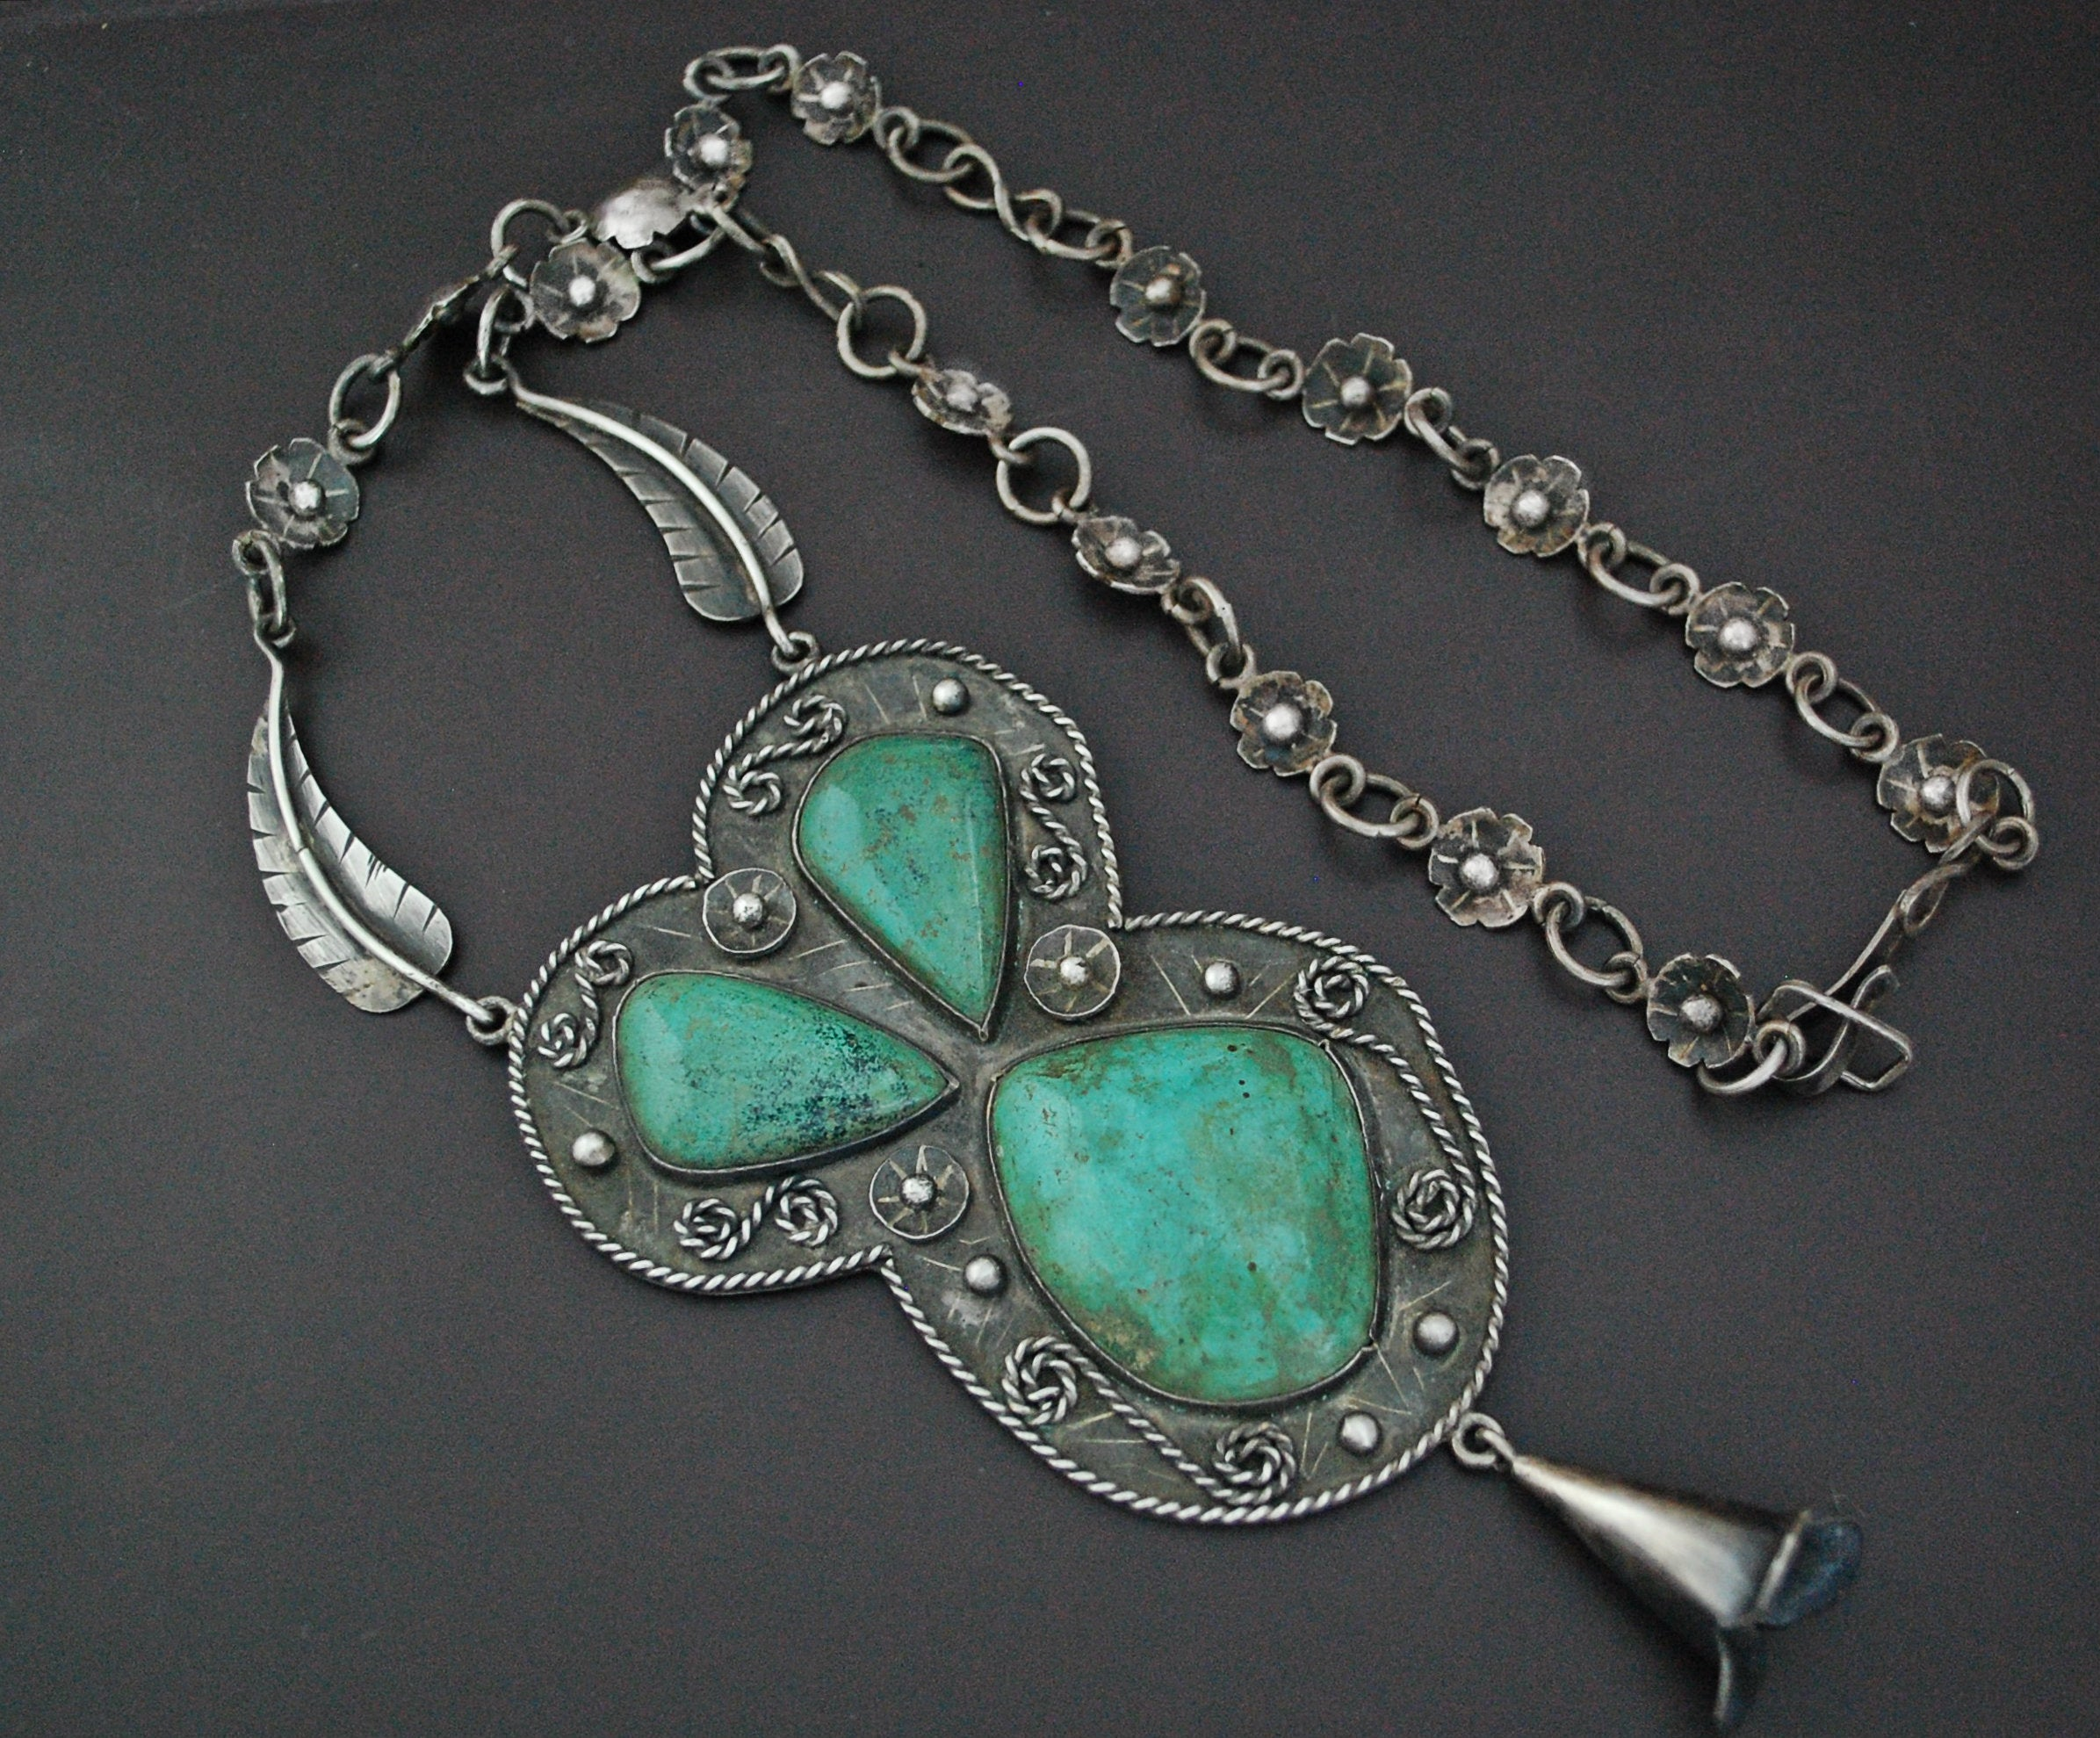 Huge Navajo Turquoise Feather Necklace